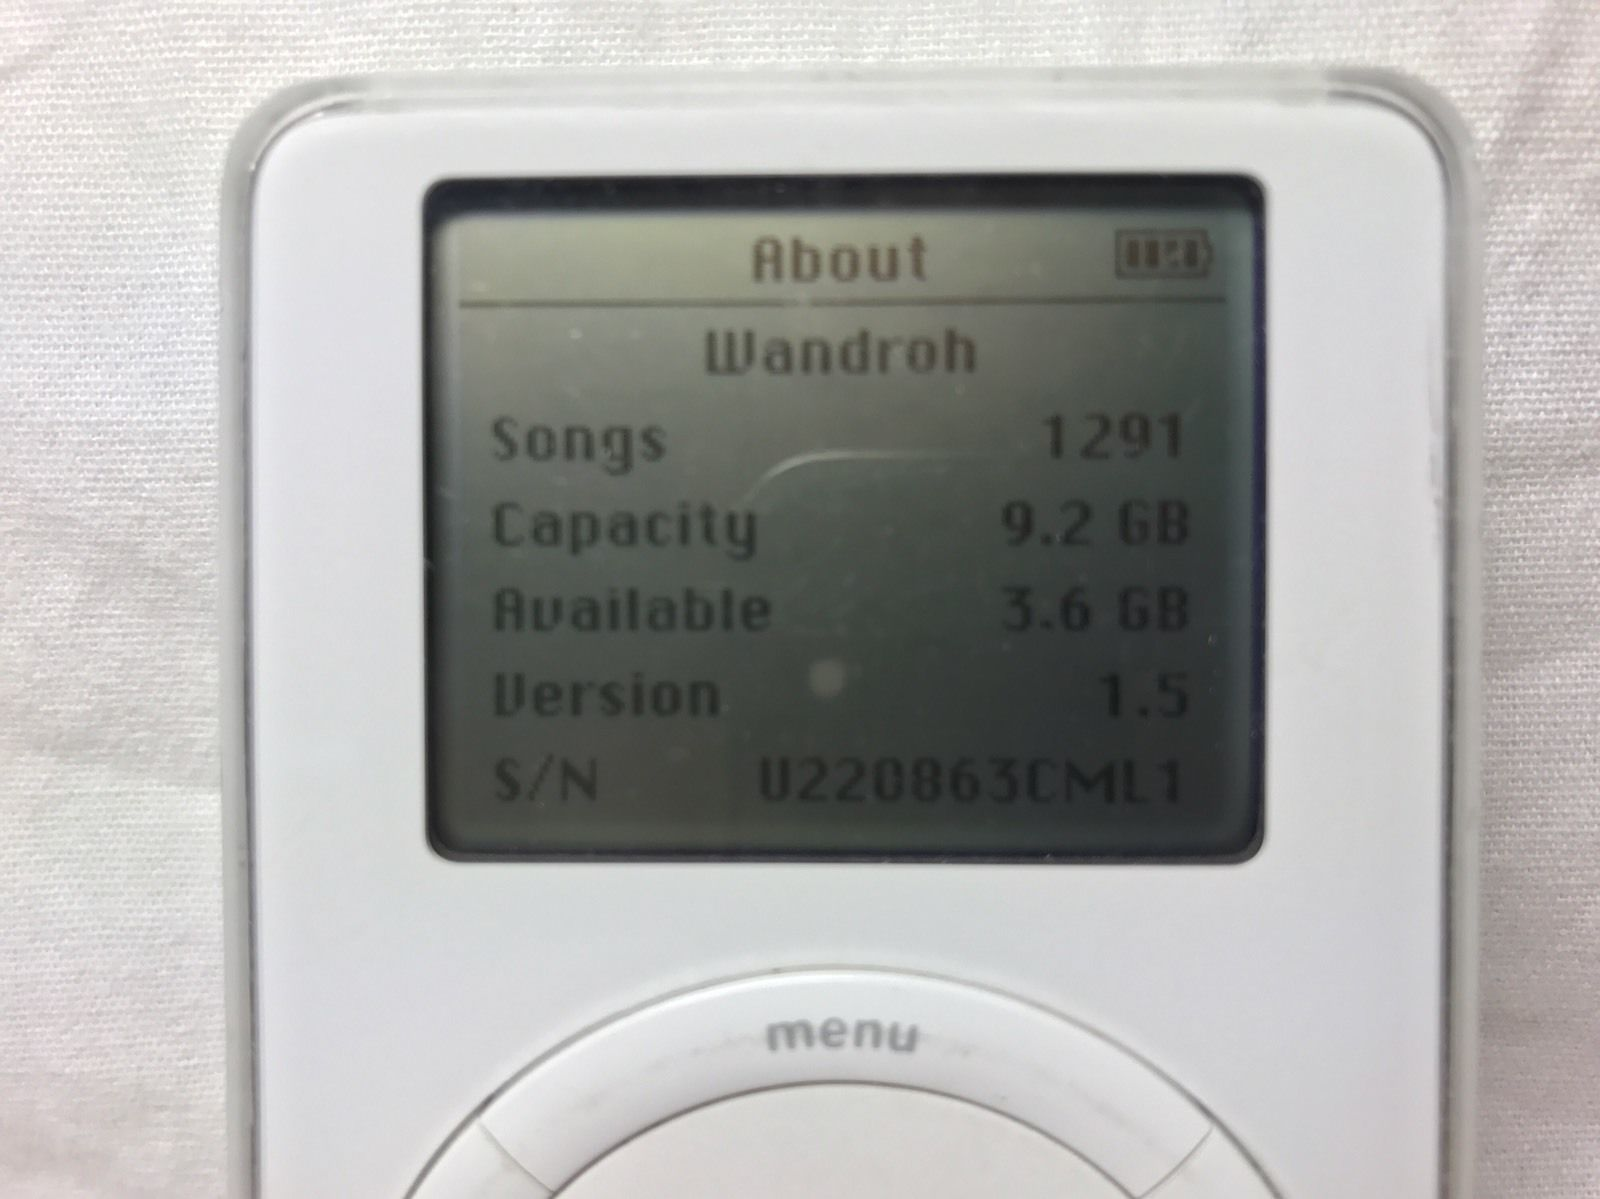 100k Apple Ipod Prototype Sells On Ebay 2020